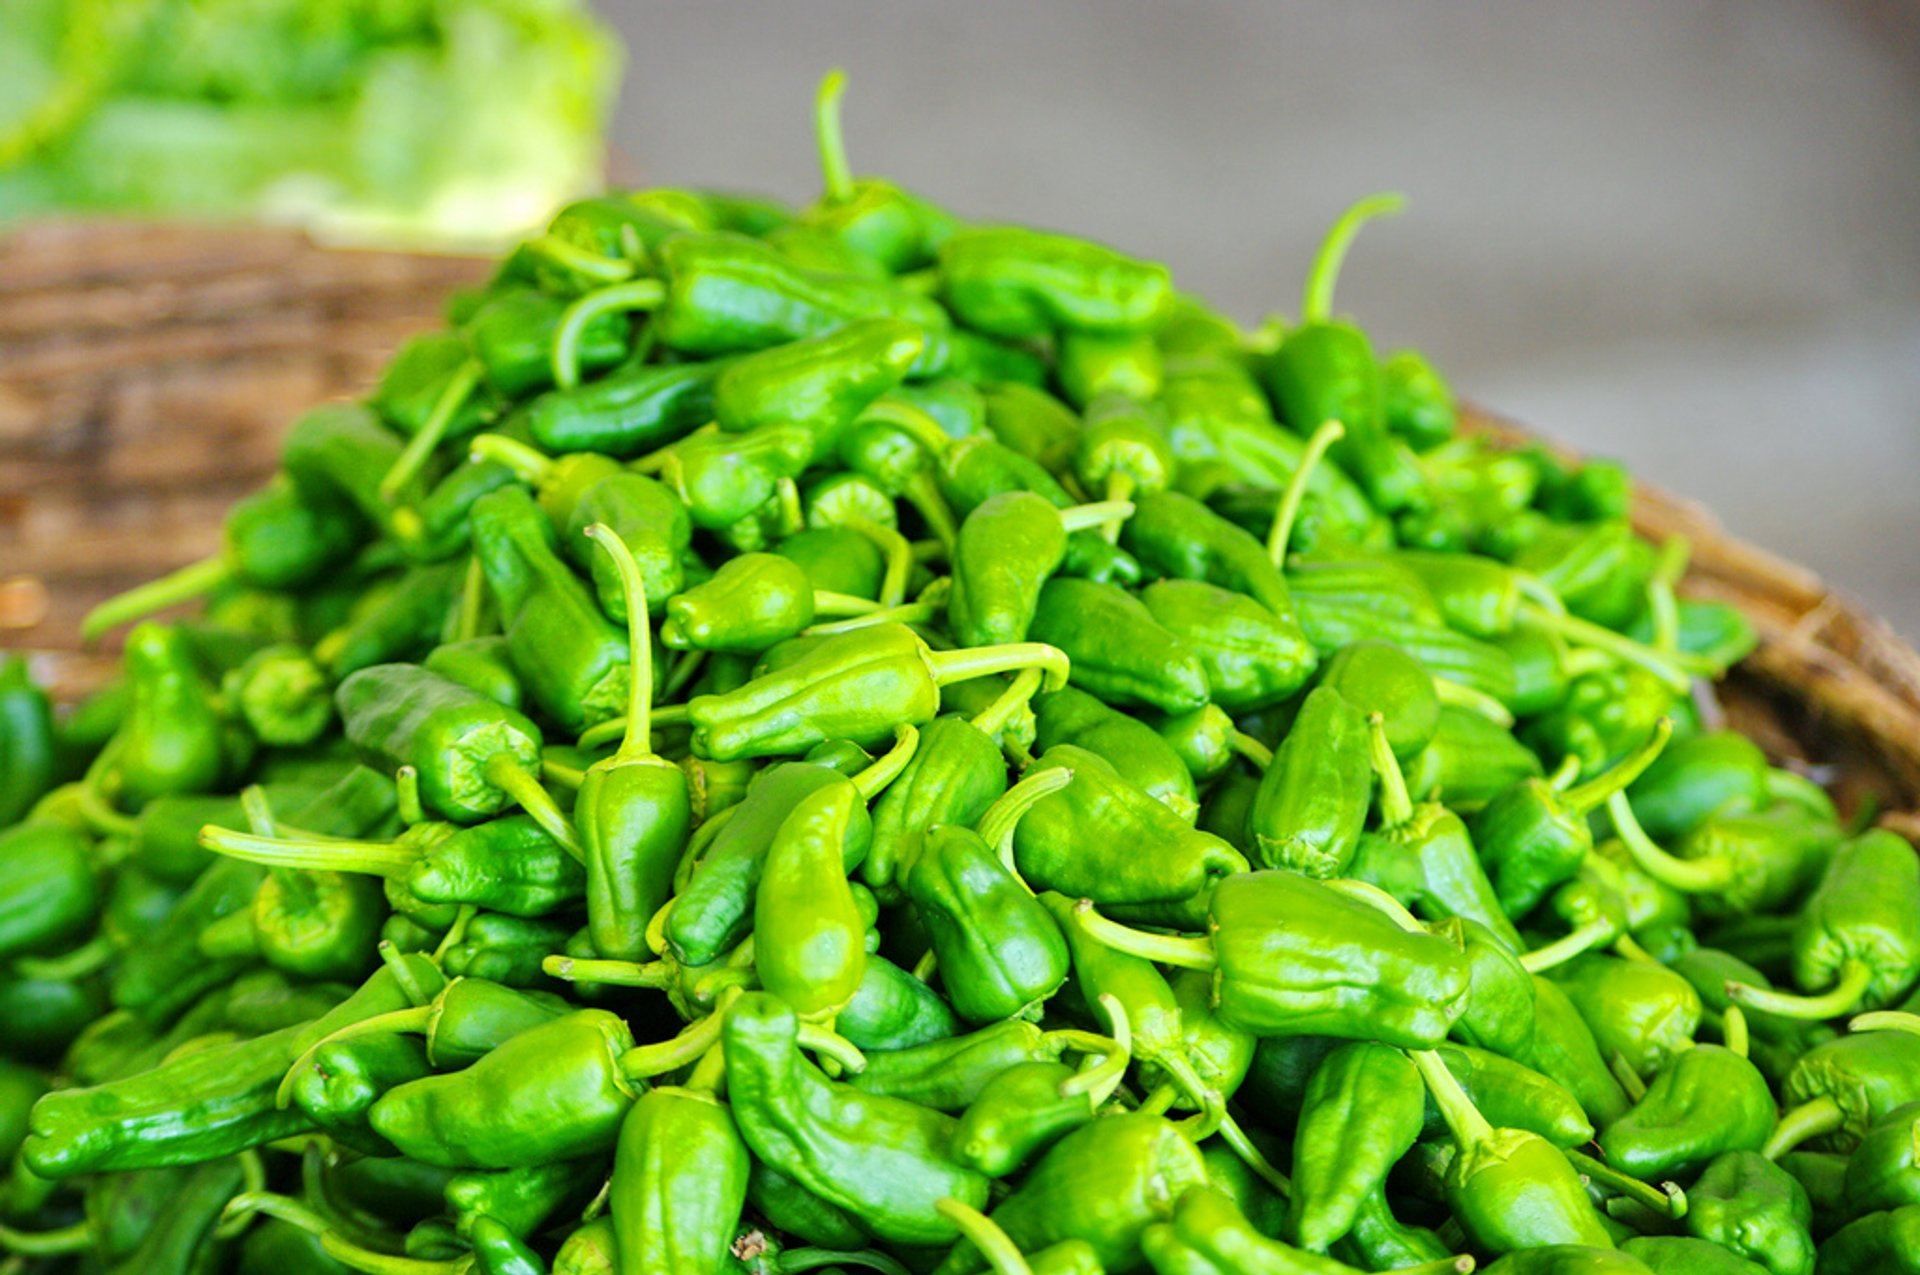 Padrón Peppers (Pimientos de Padrón) in Spain 2019 - Best Time